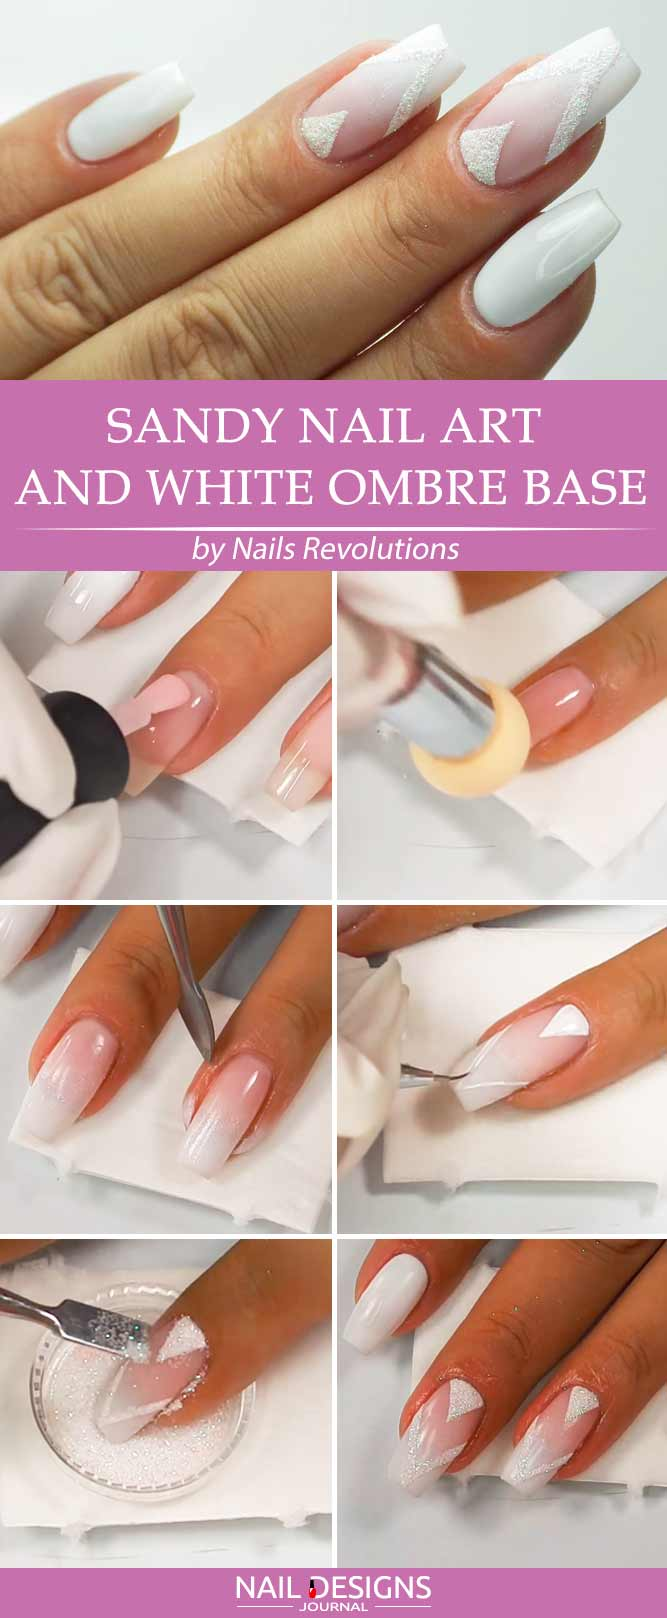 Sandy Nail Art and White Ombre Base